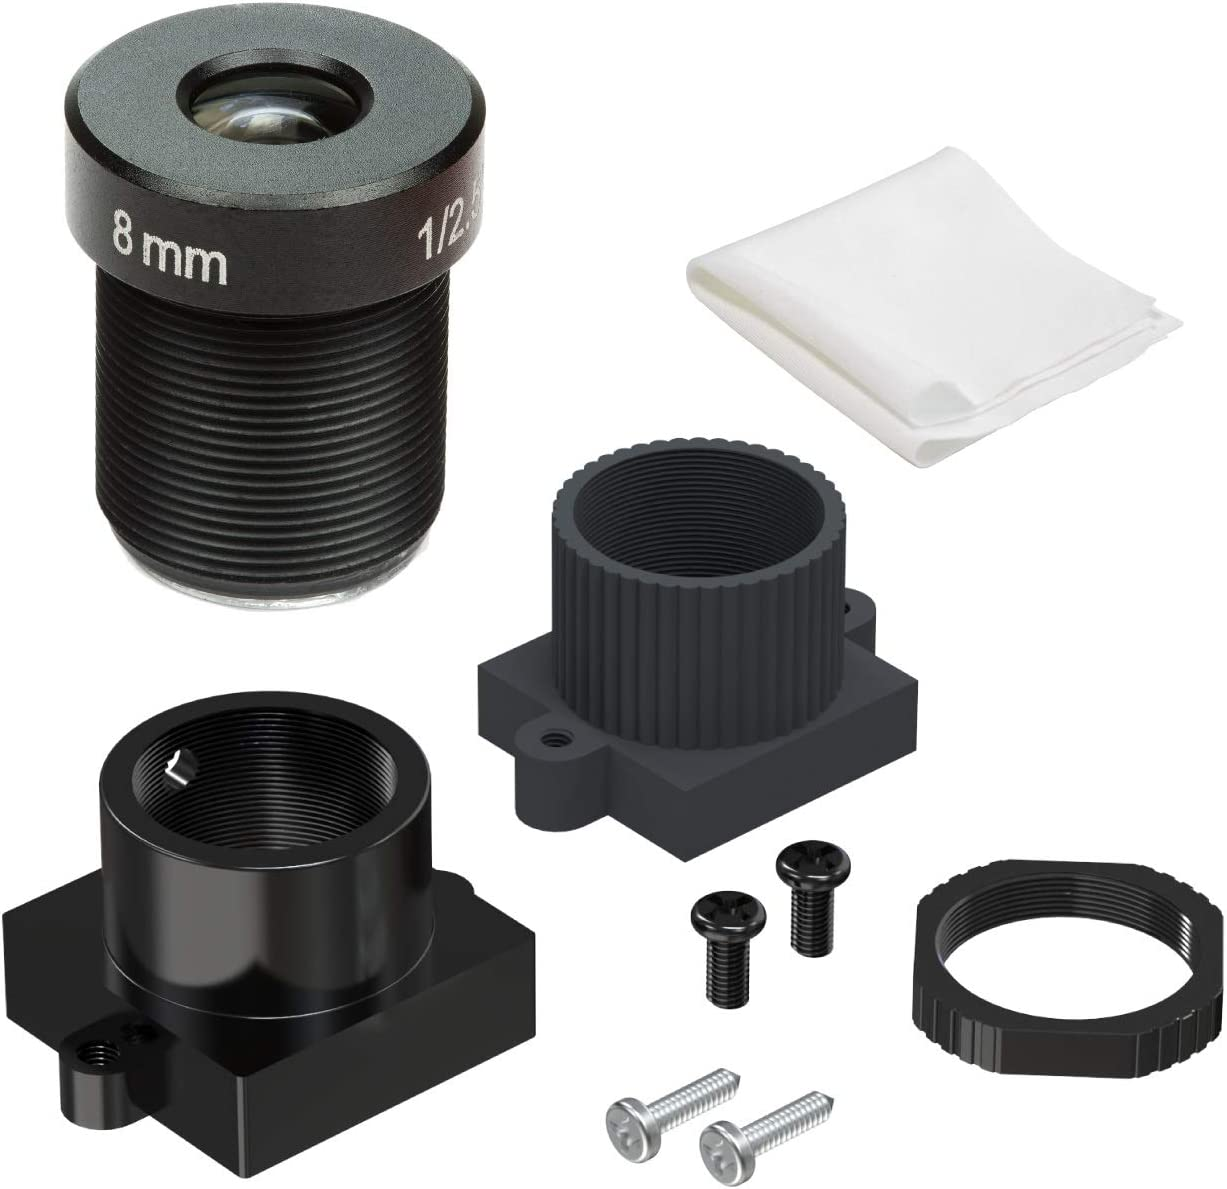 "Arducam Telephoto M12 Lens, 1/2.5"" 8mm Long Focal Length Lens with Length Holder for Arduino and Raspberry Pi Camera, CCTV Security Camera"